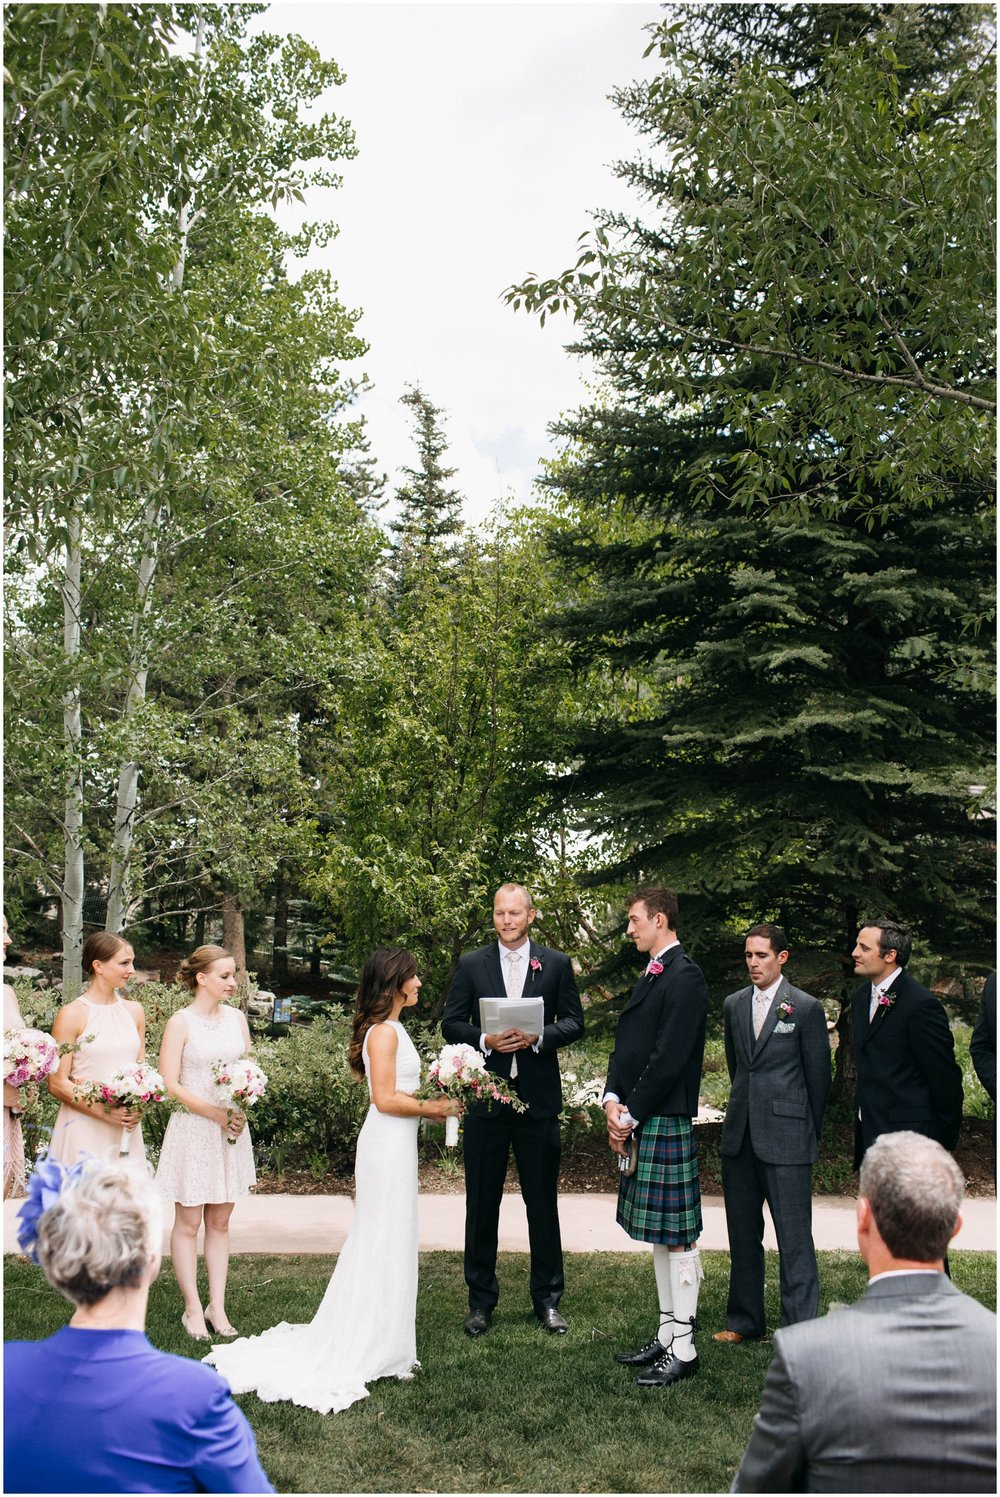 Courtney+Jamie_modern_vail_village_wedding_colorado_taylor_powers_0075.jpg